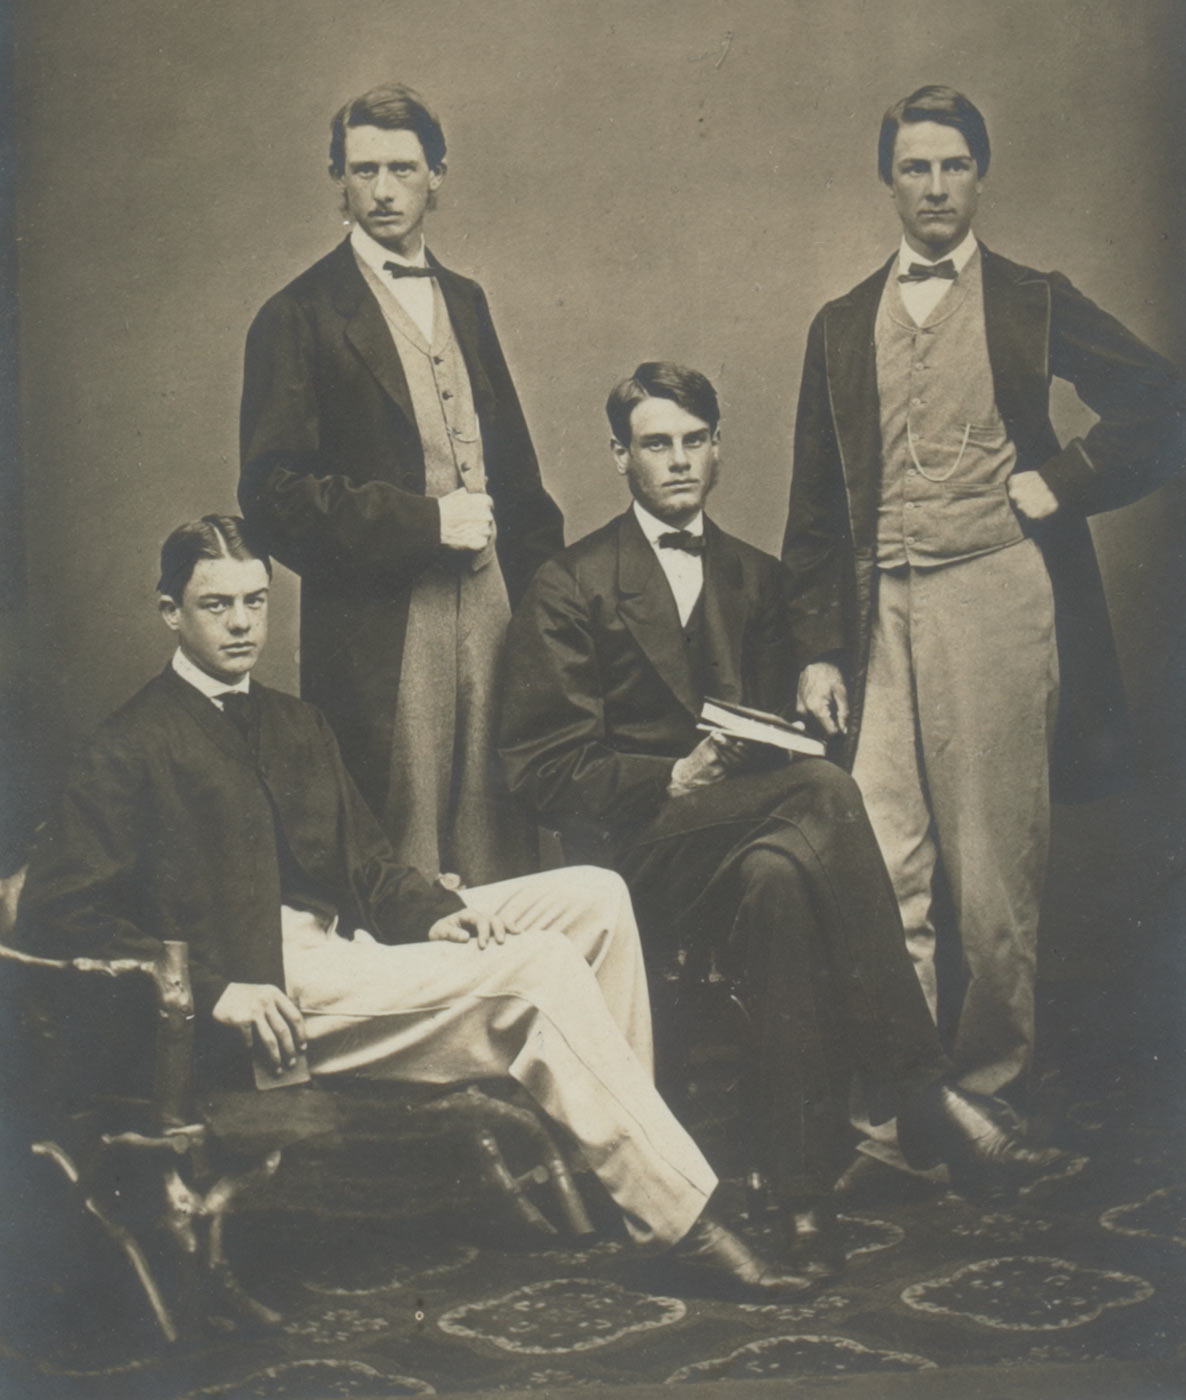 A black and white portrait photograph of four men, two seated and two standing, all wearing suits and bowties. The photograph is set on a grey mount and in a light brown wooden frame with recessed gold interior edging. It depicts standing, on left, William Percy, on right, George Ernest; seated on left, Reginald, on right Henry Montague. Handwritten on mount